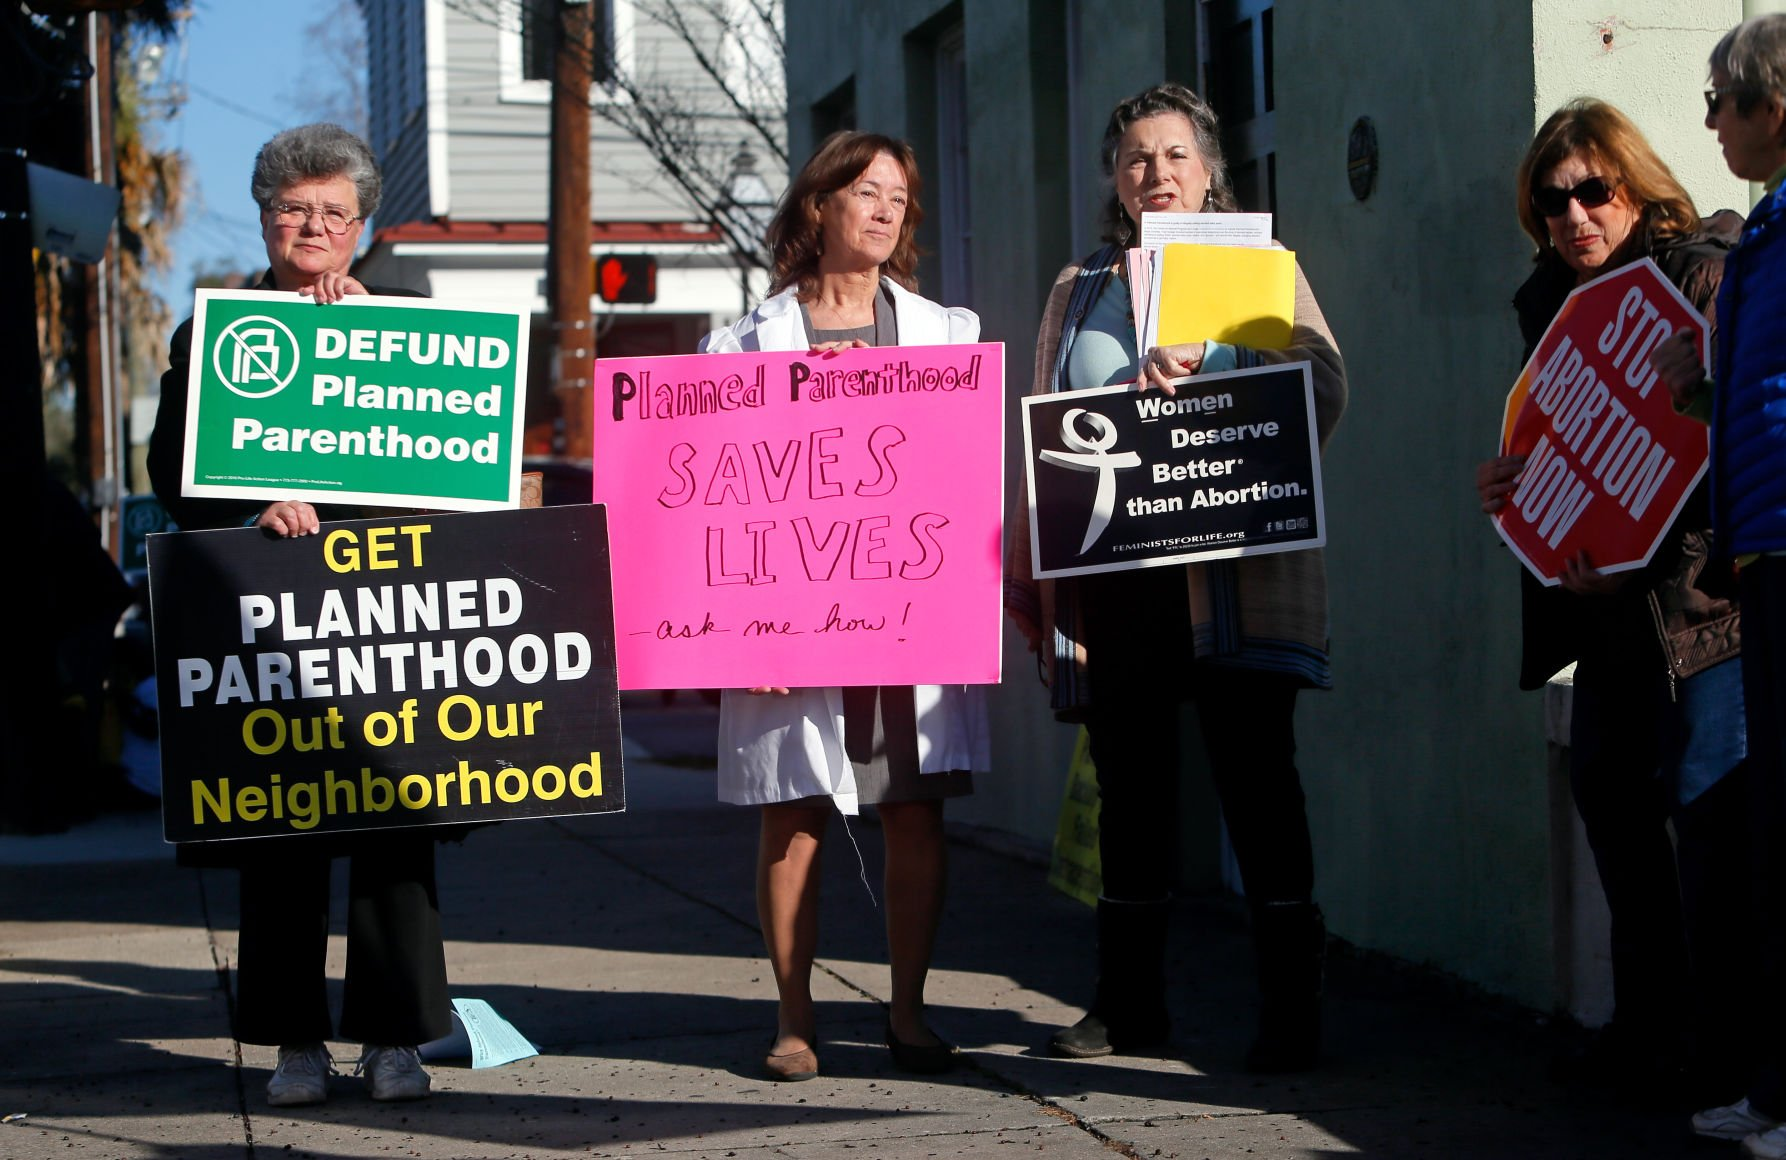 South Carolina Blocks Executive Agencies From Funding Abortion Clinics